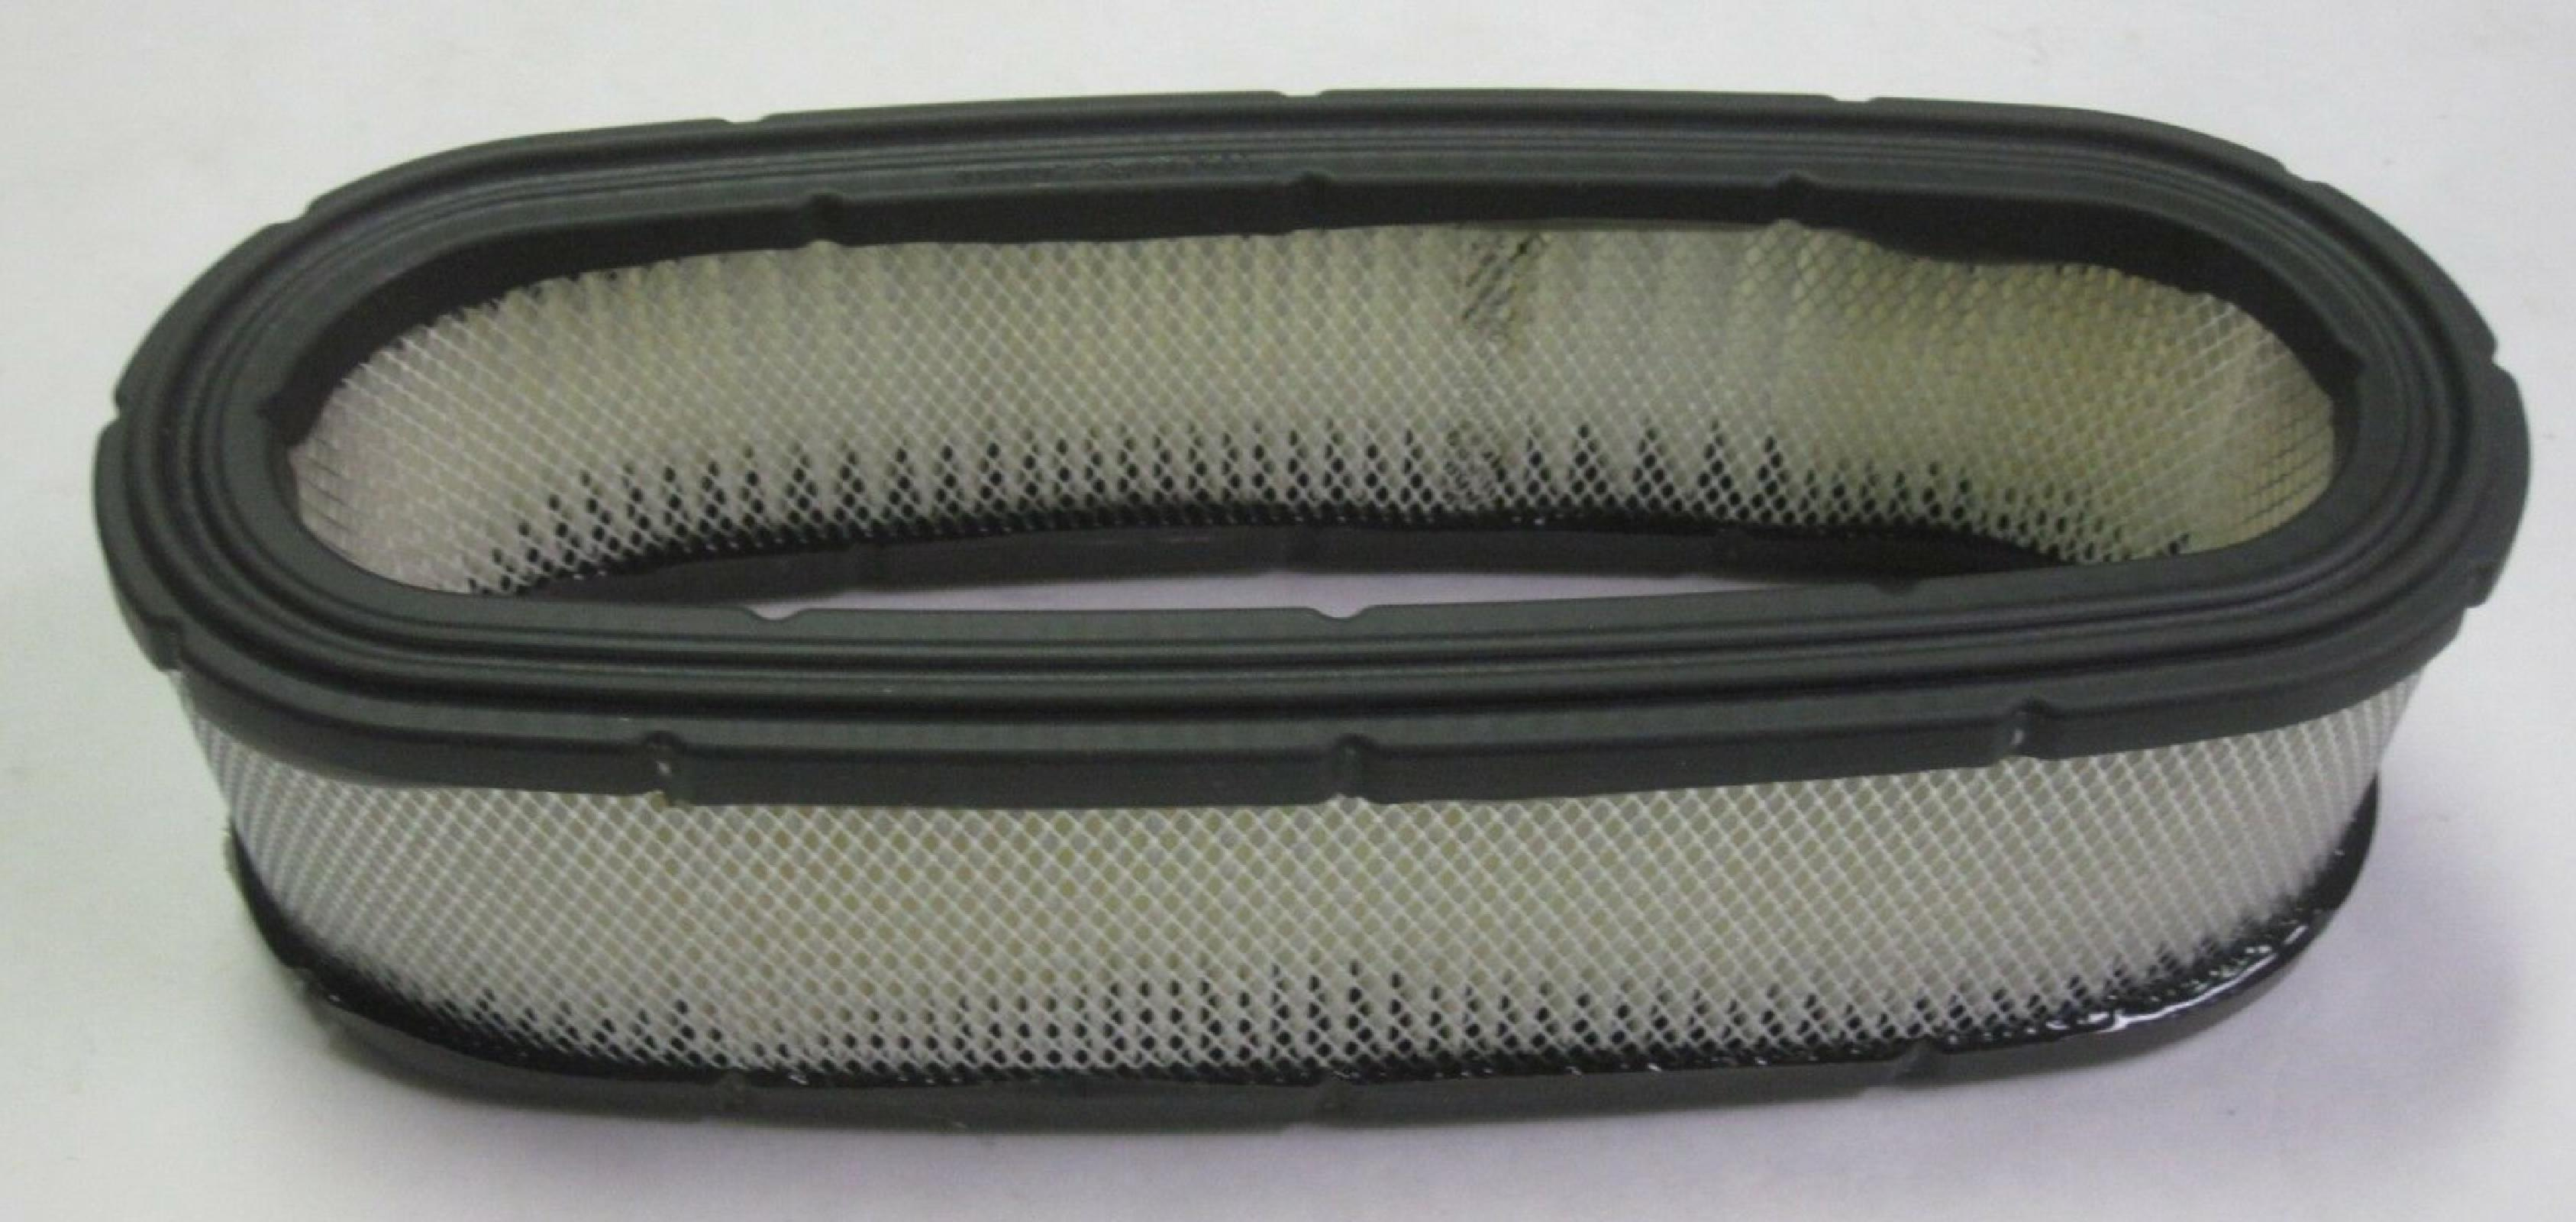 Air filter replaces Briggs & Stratton 394019 394019S